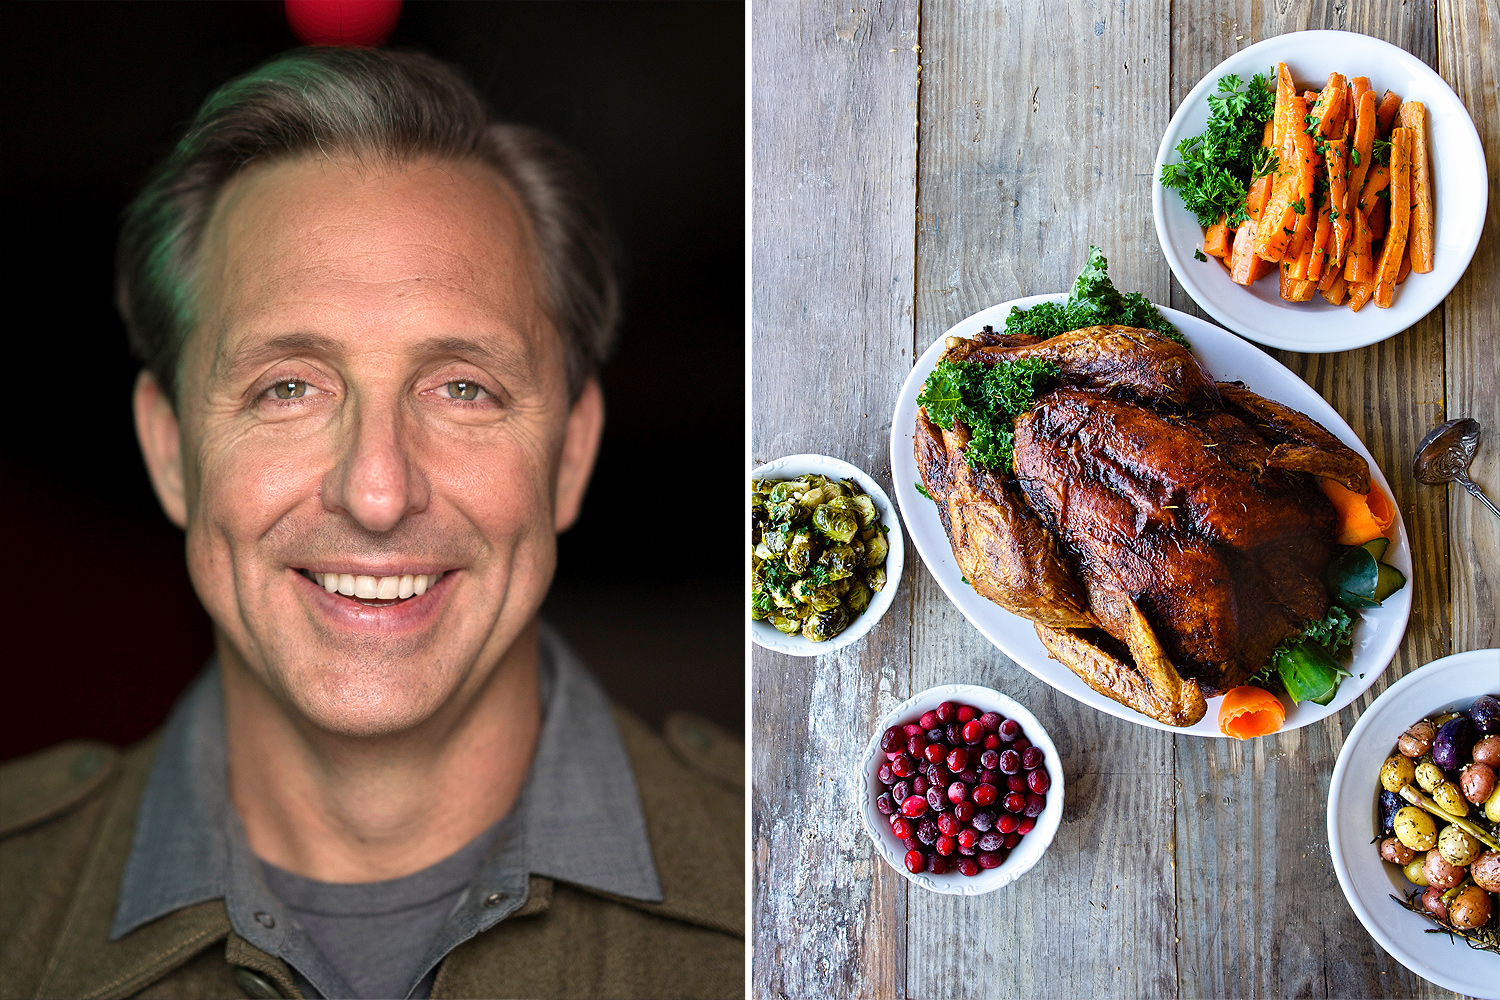 How to Feel Good About Thanksgiving Dinner, According to nutritionist Dave Asprey